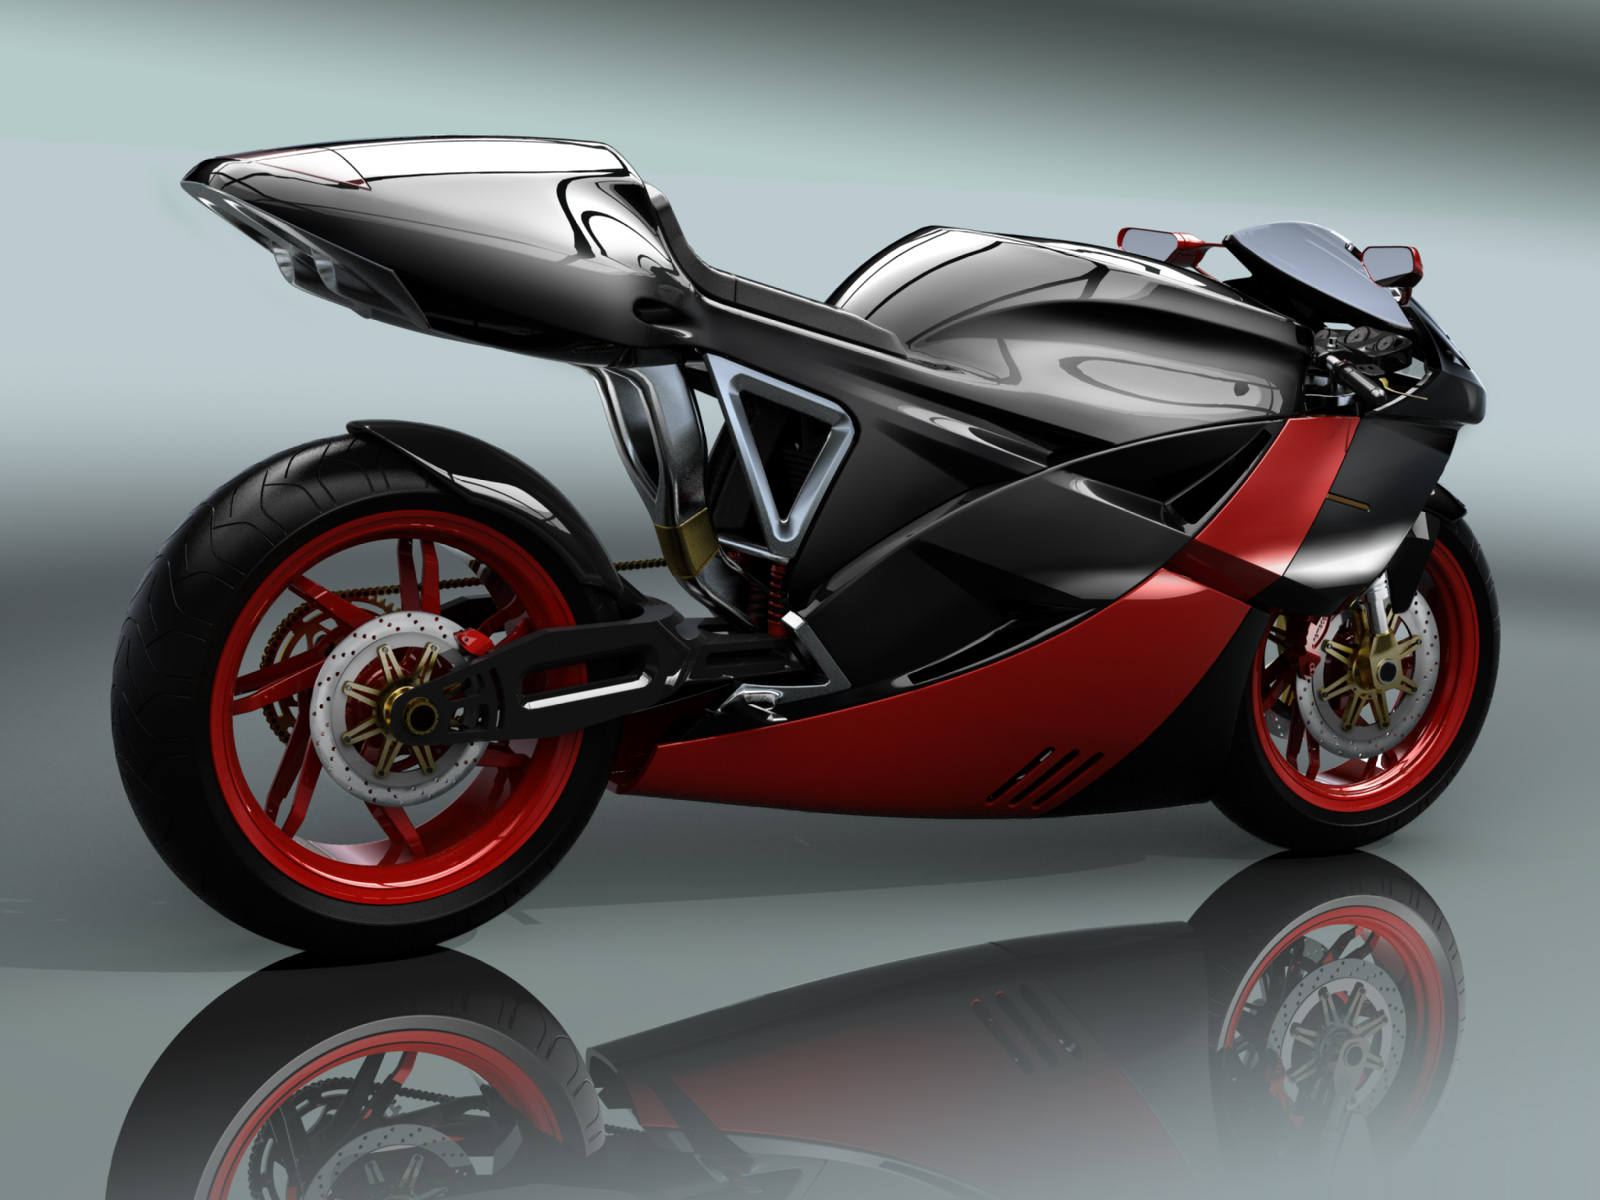 Beautiful black and red sports bike futuristic shapes wallpaper.